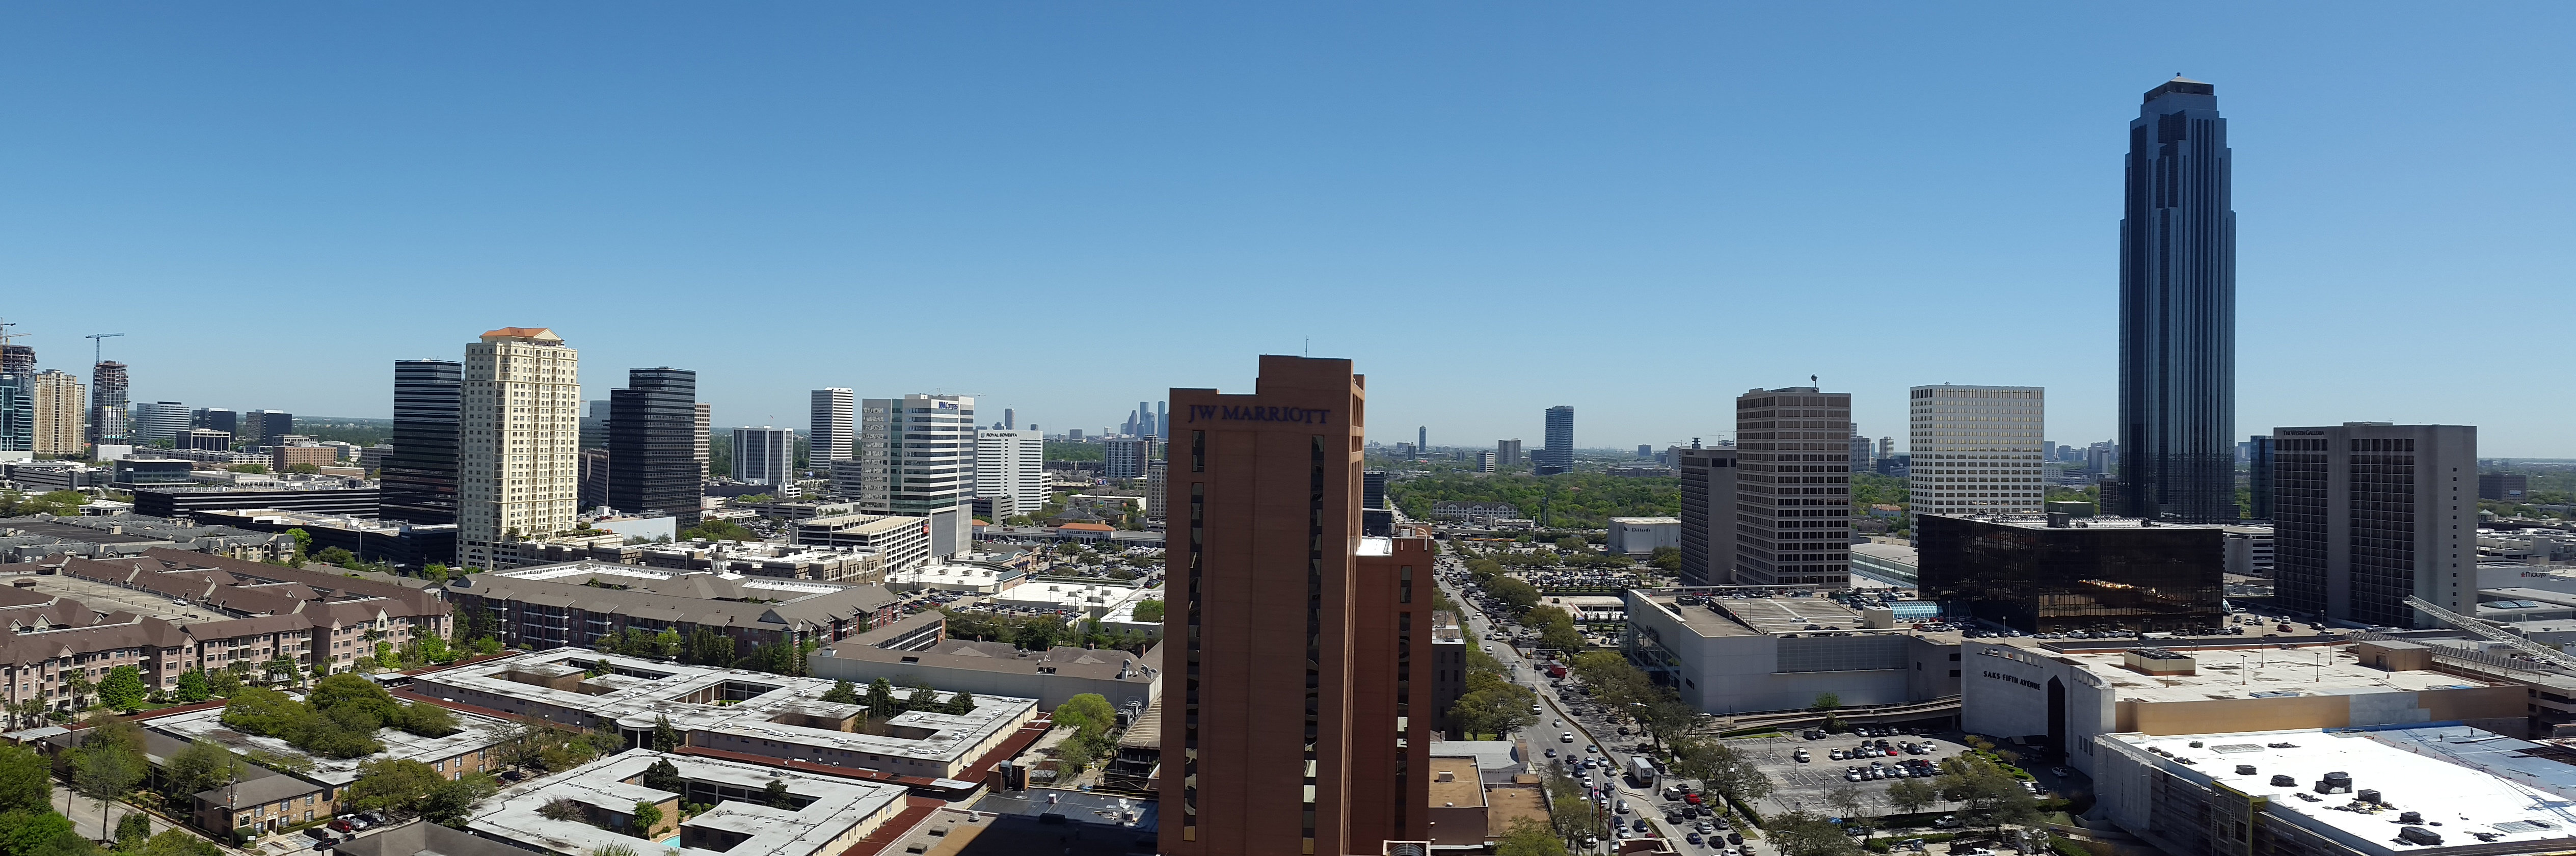 Furnished Apartments Houston Amp Corporate Housing Houston Vip Corporate Housing